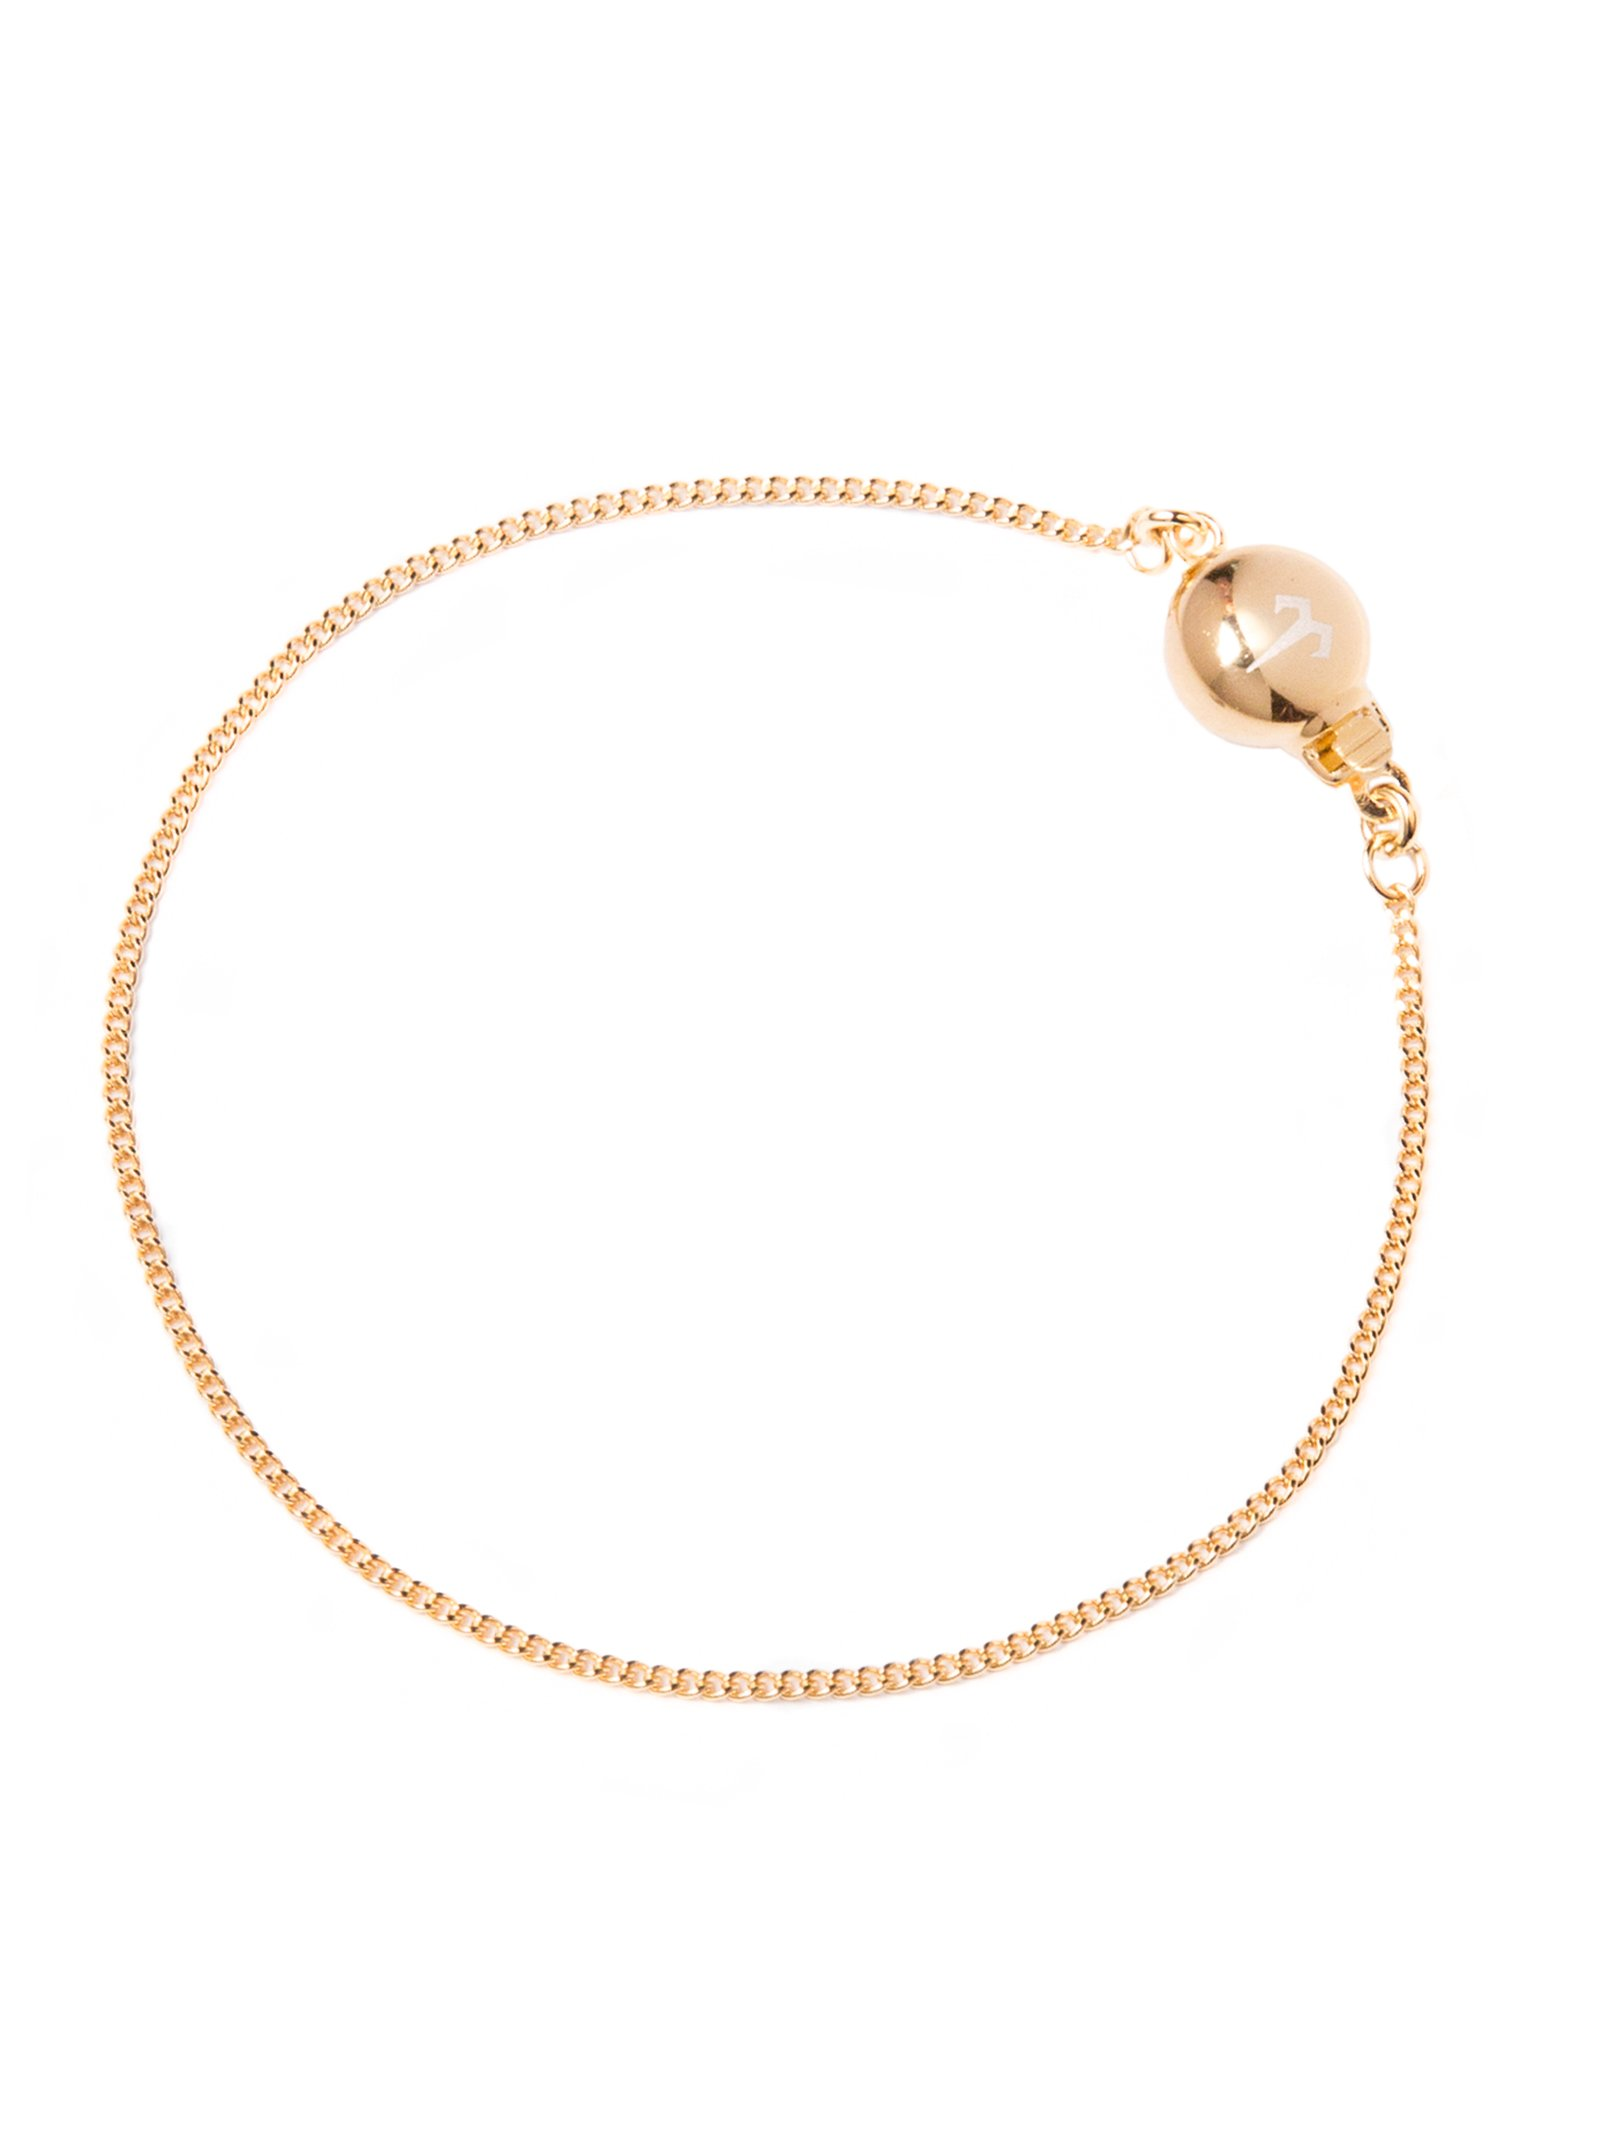 Ternary London TERNARY TIMELESS 18CT GOLD PLATED STERLING SILVER CHAIN BRACELET